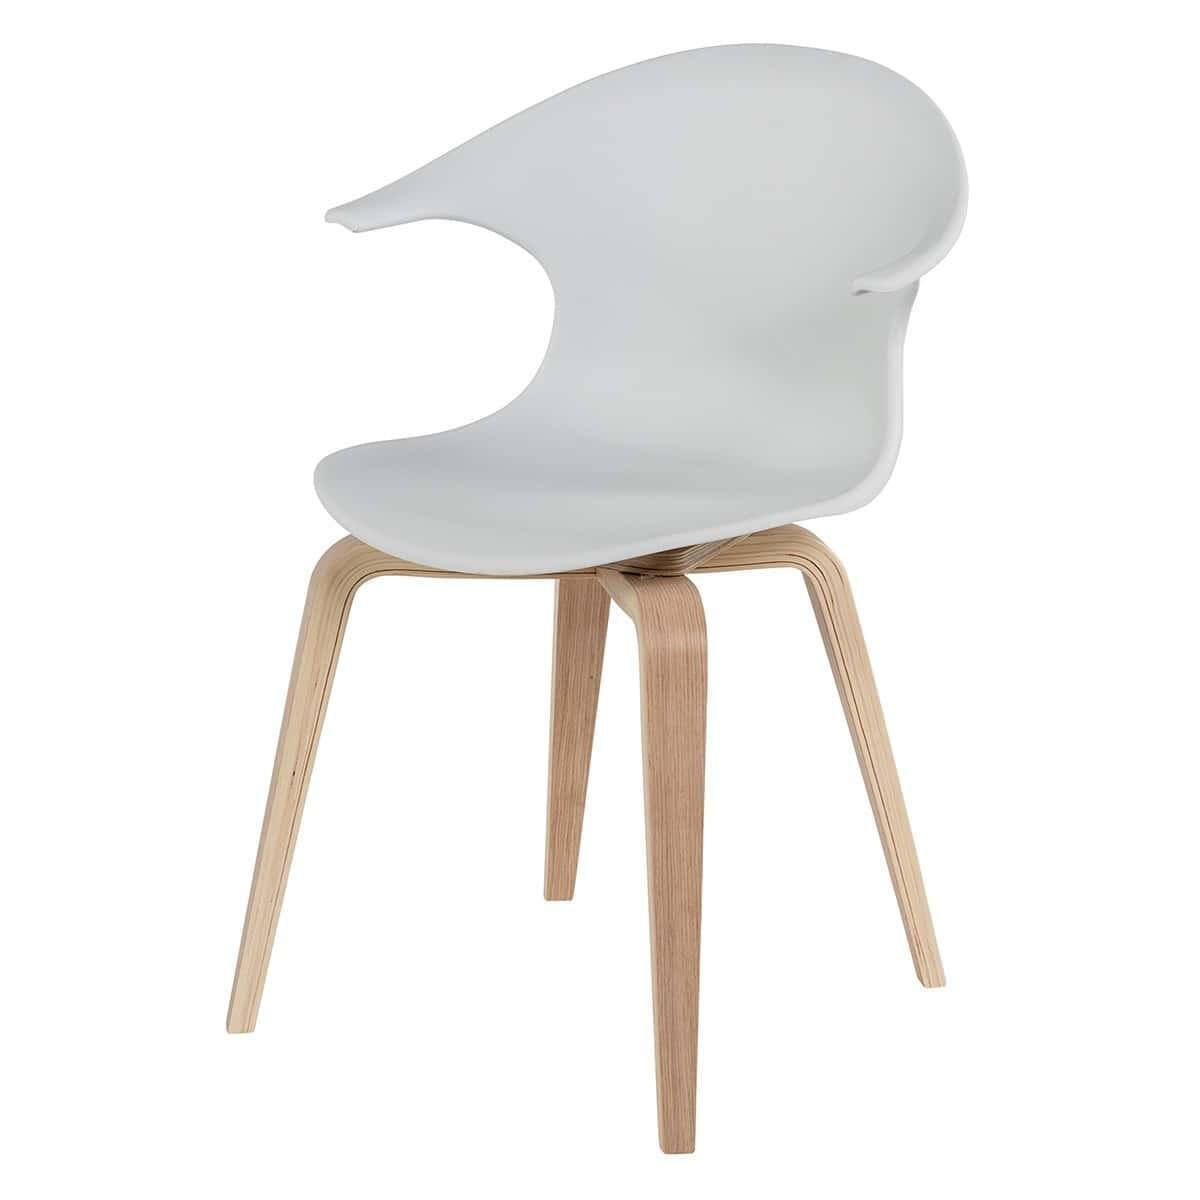 Set of 2 Iggy Designer Dining Chairs - White